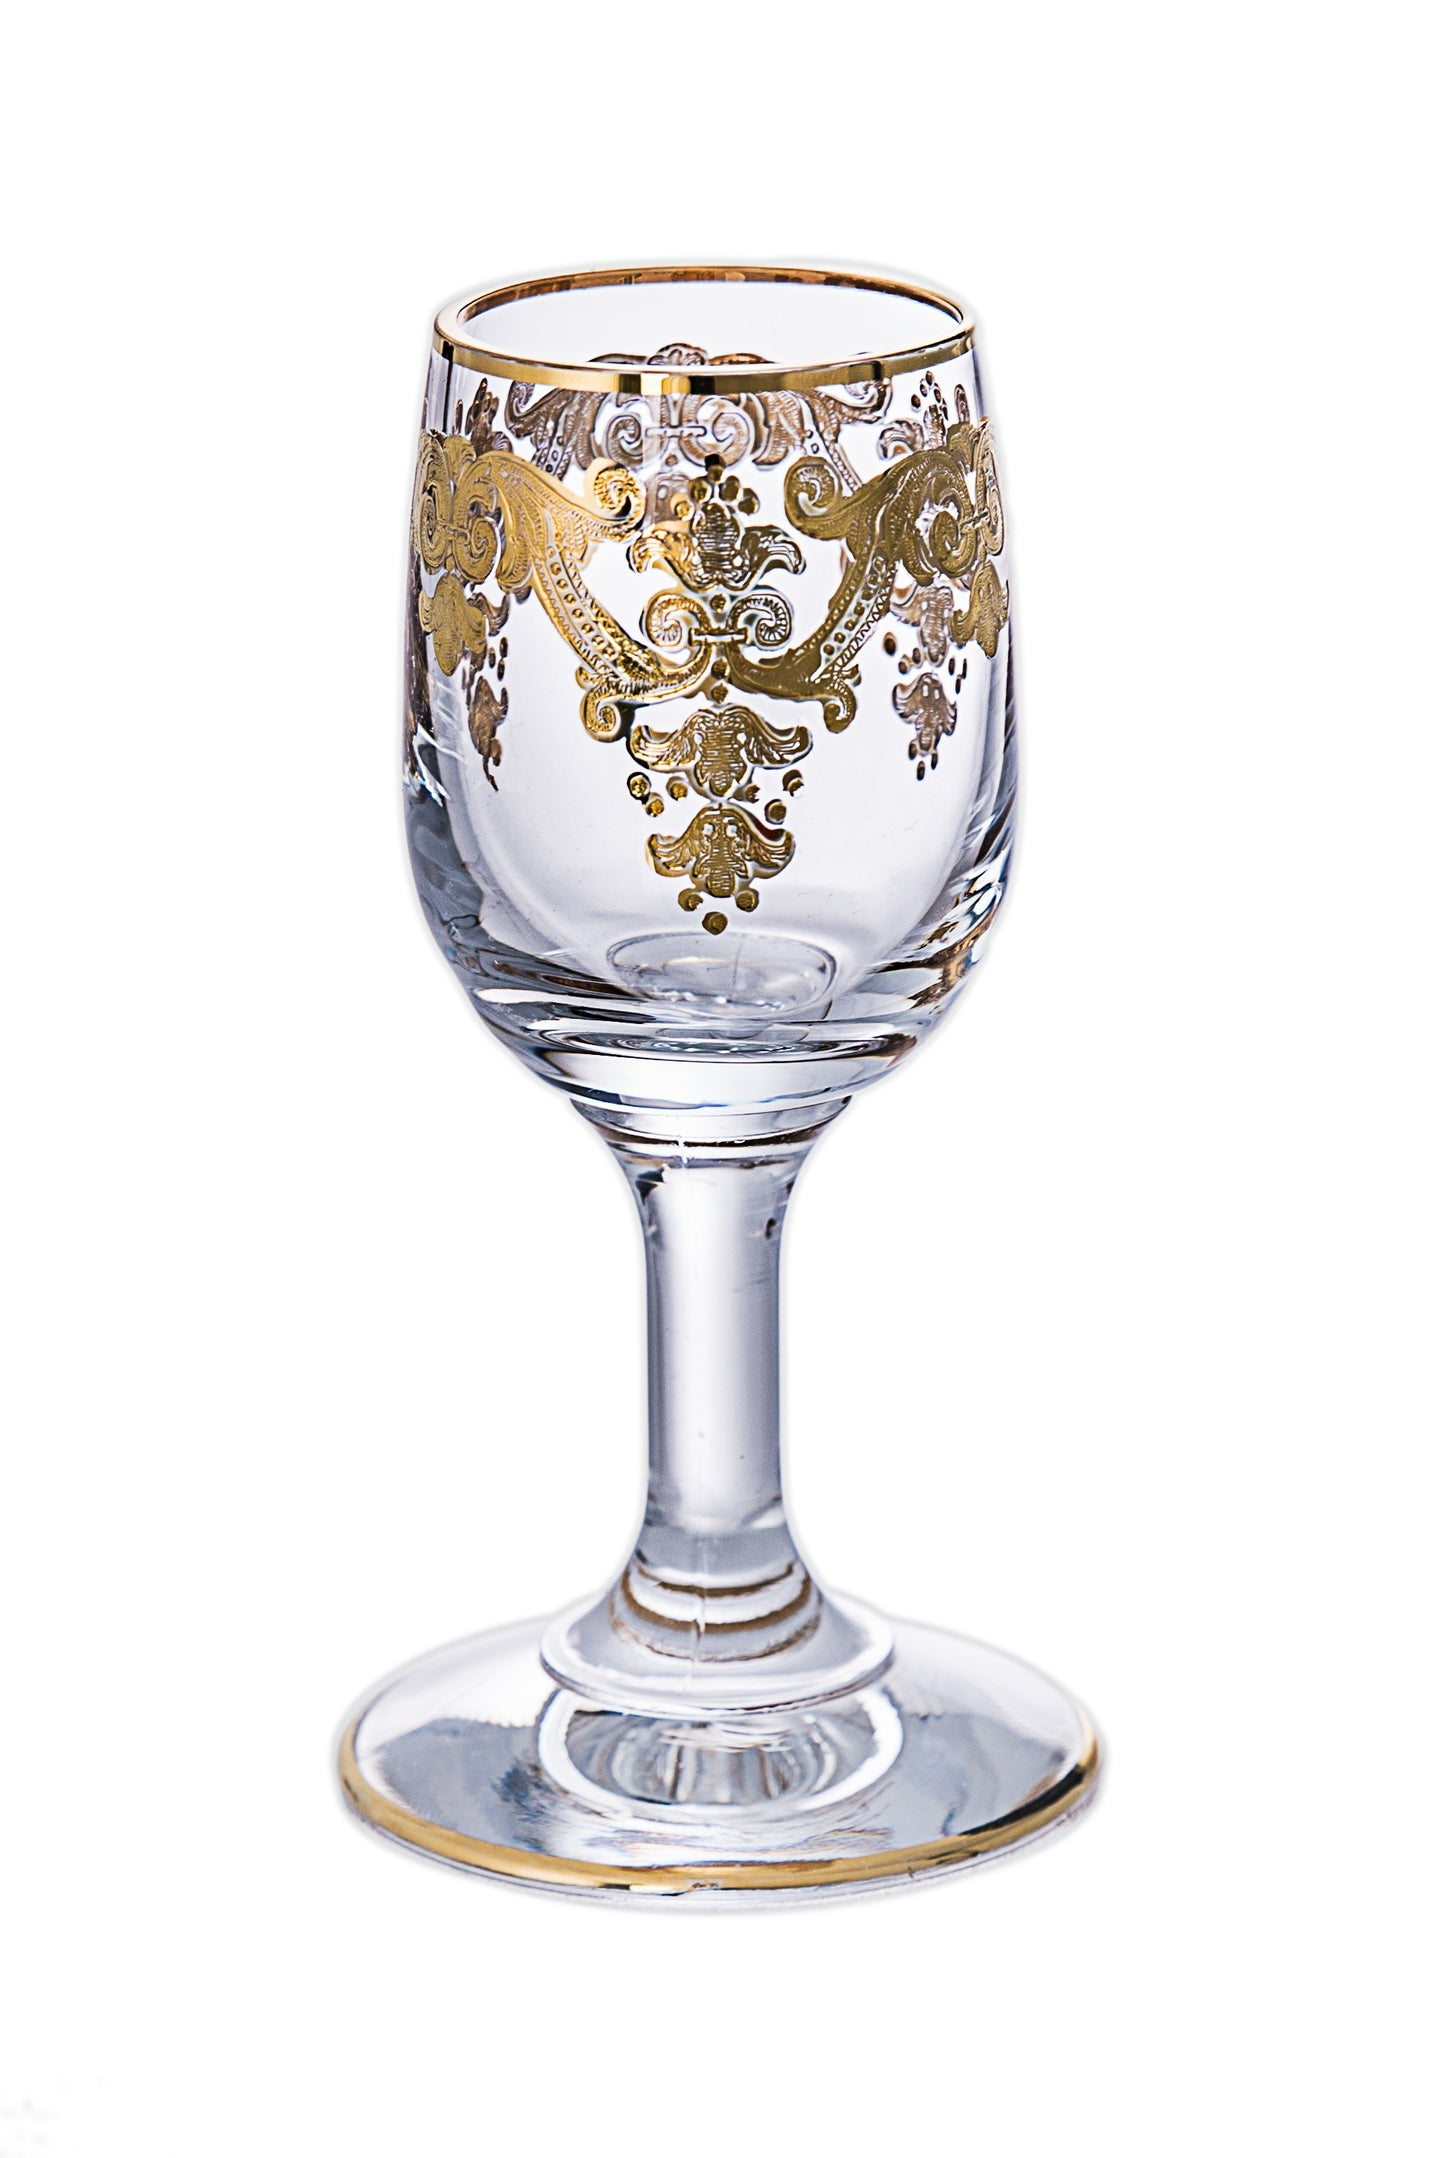 Set of 6 Liquer Glasses with 24K Gold Artwork